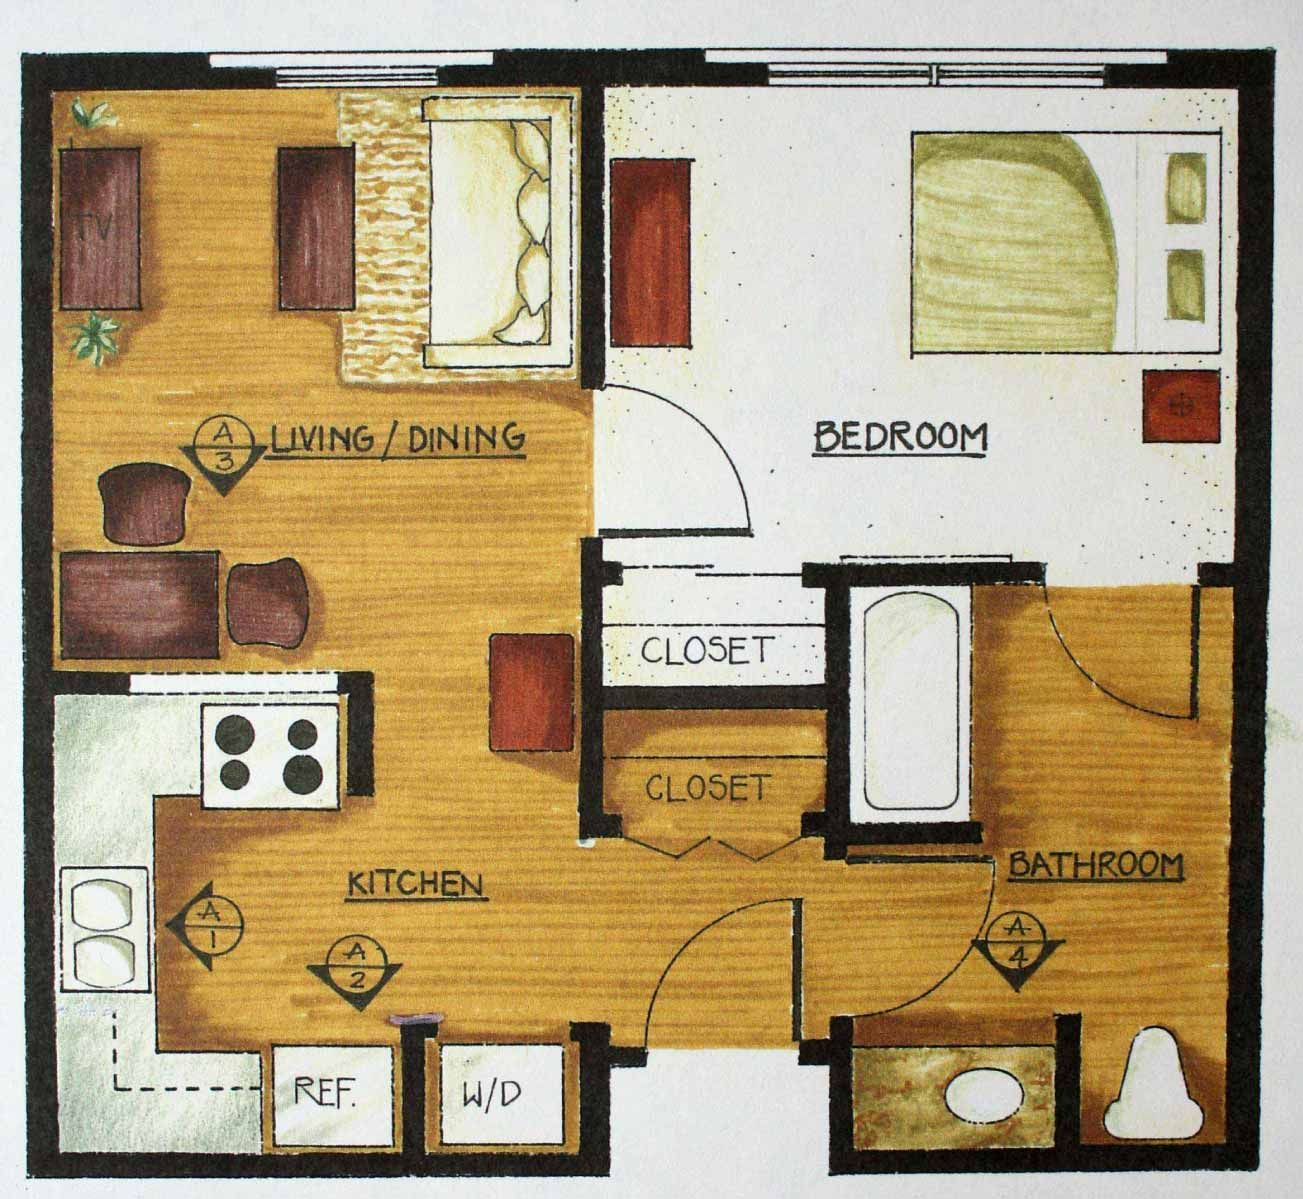 simple floor plan nice for mother in law has 2 closets - Simple House Plan